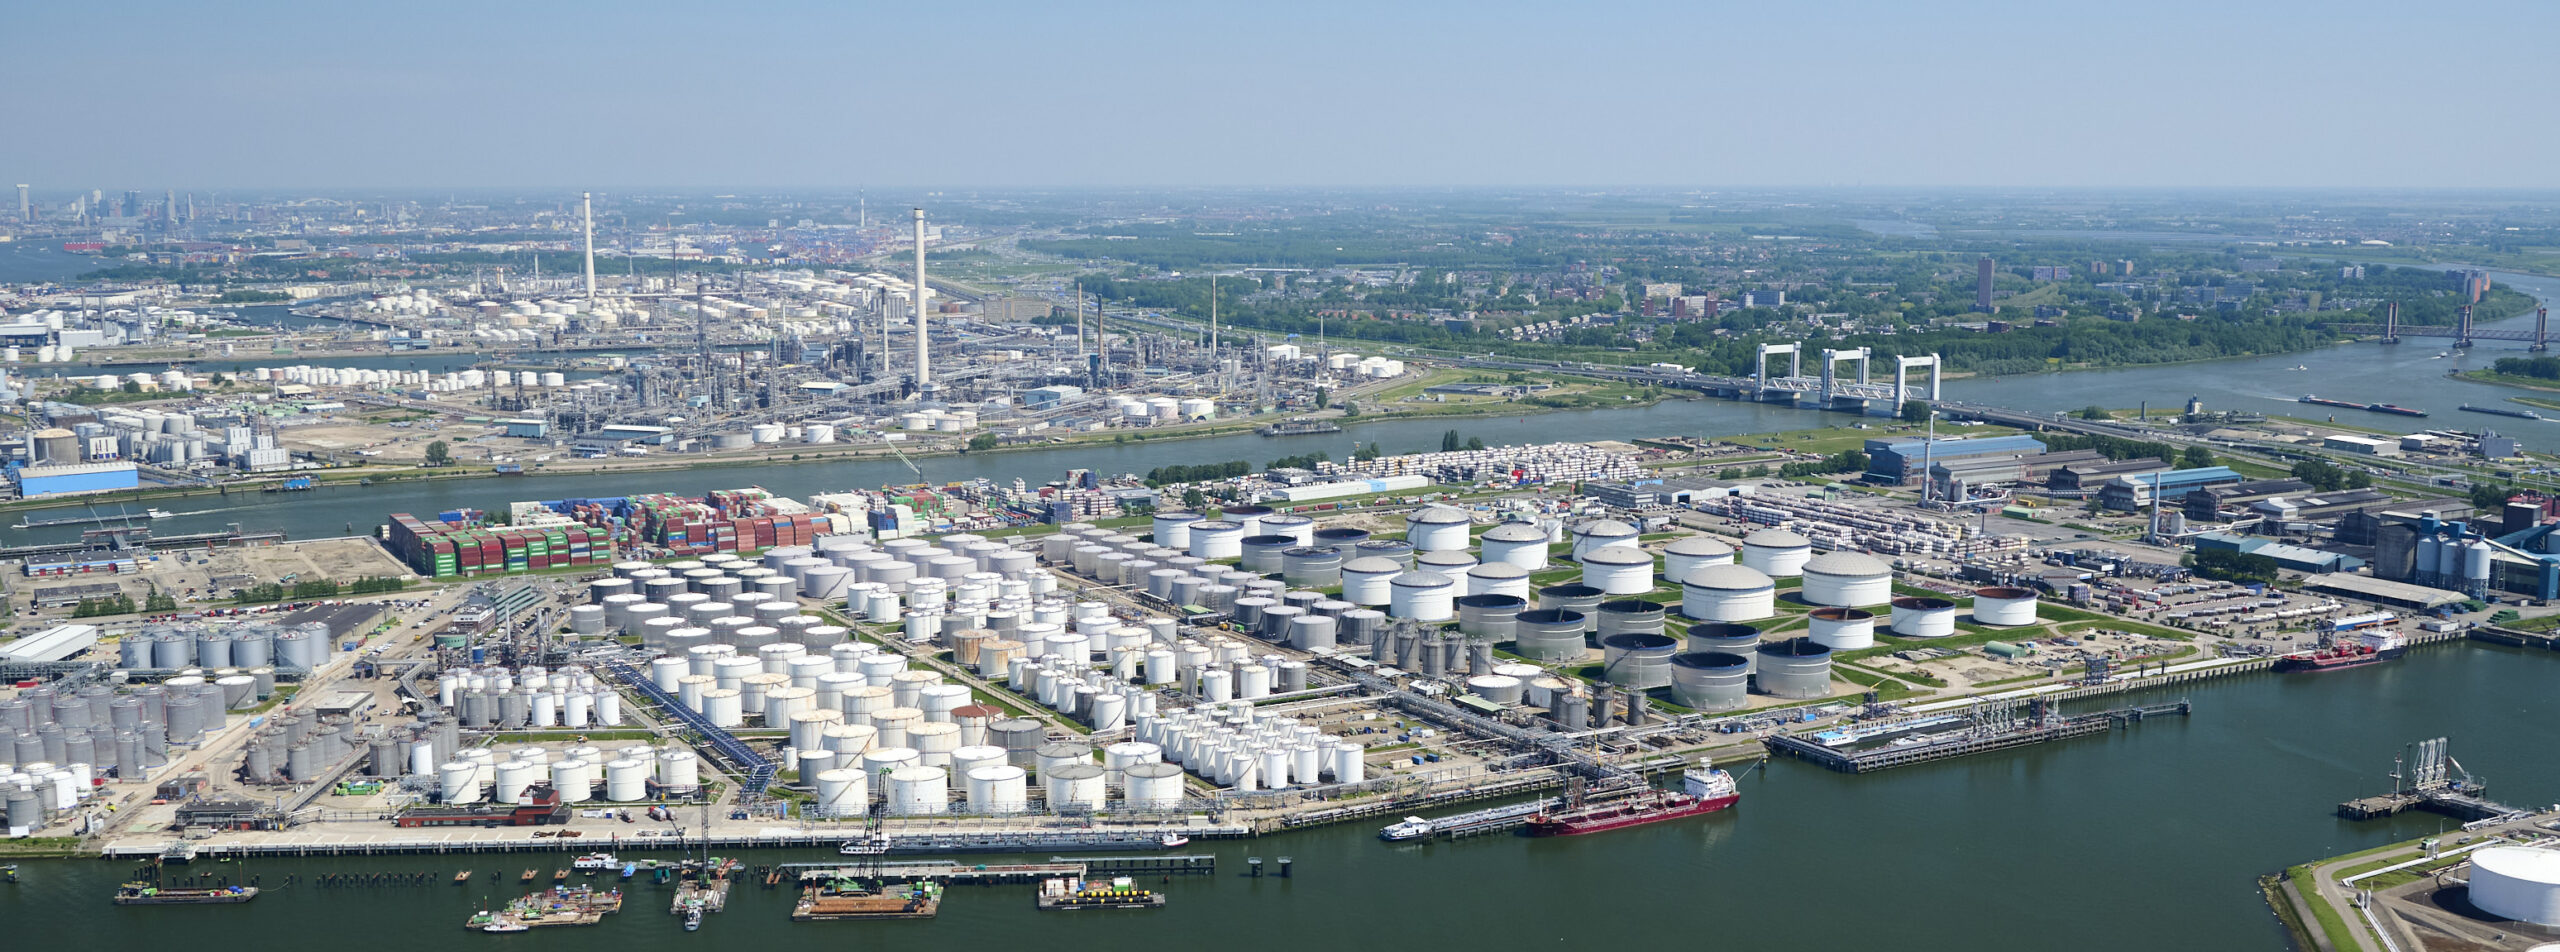 Horisont Energi signs MOU with Koole Terminals on development of ammonia terminal and storage facility at Port of Rotterdam